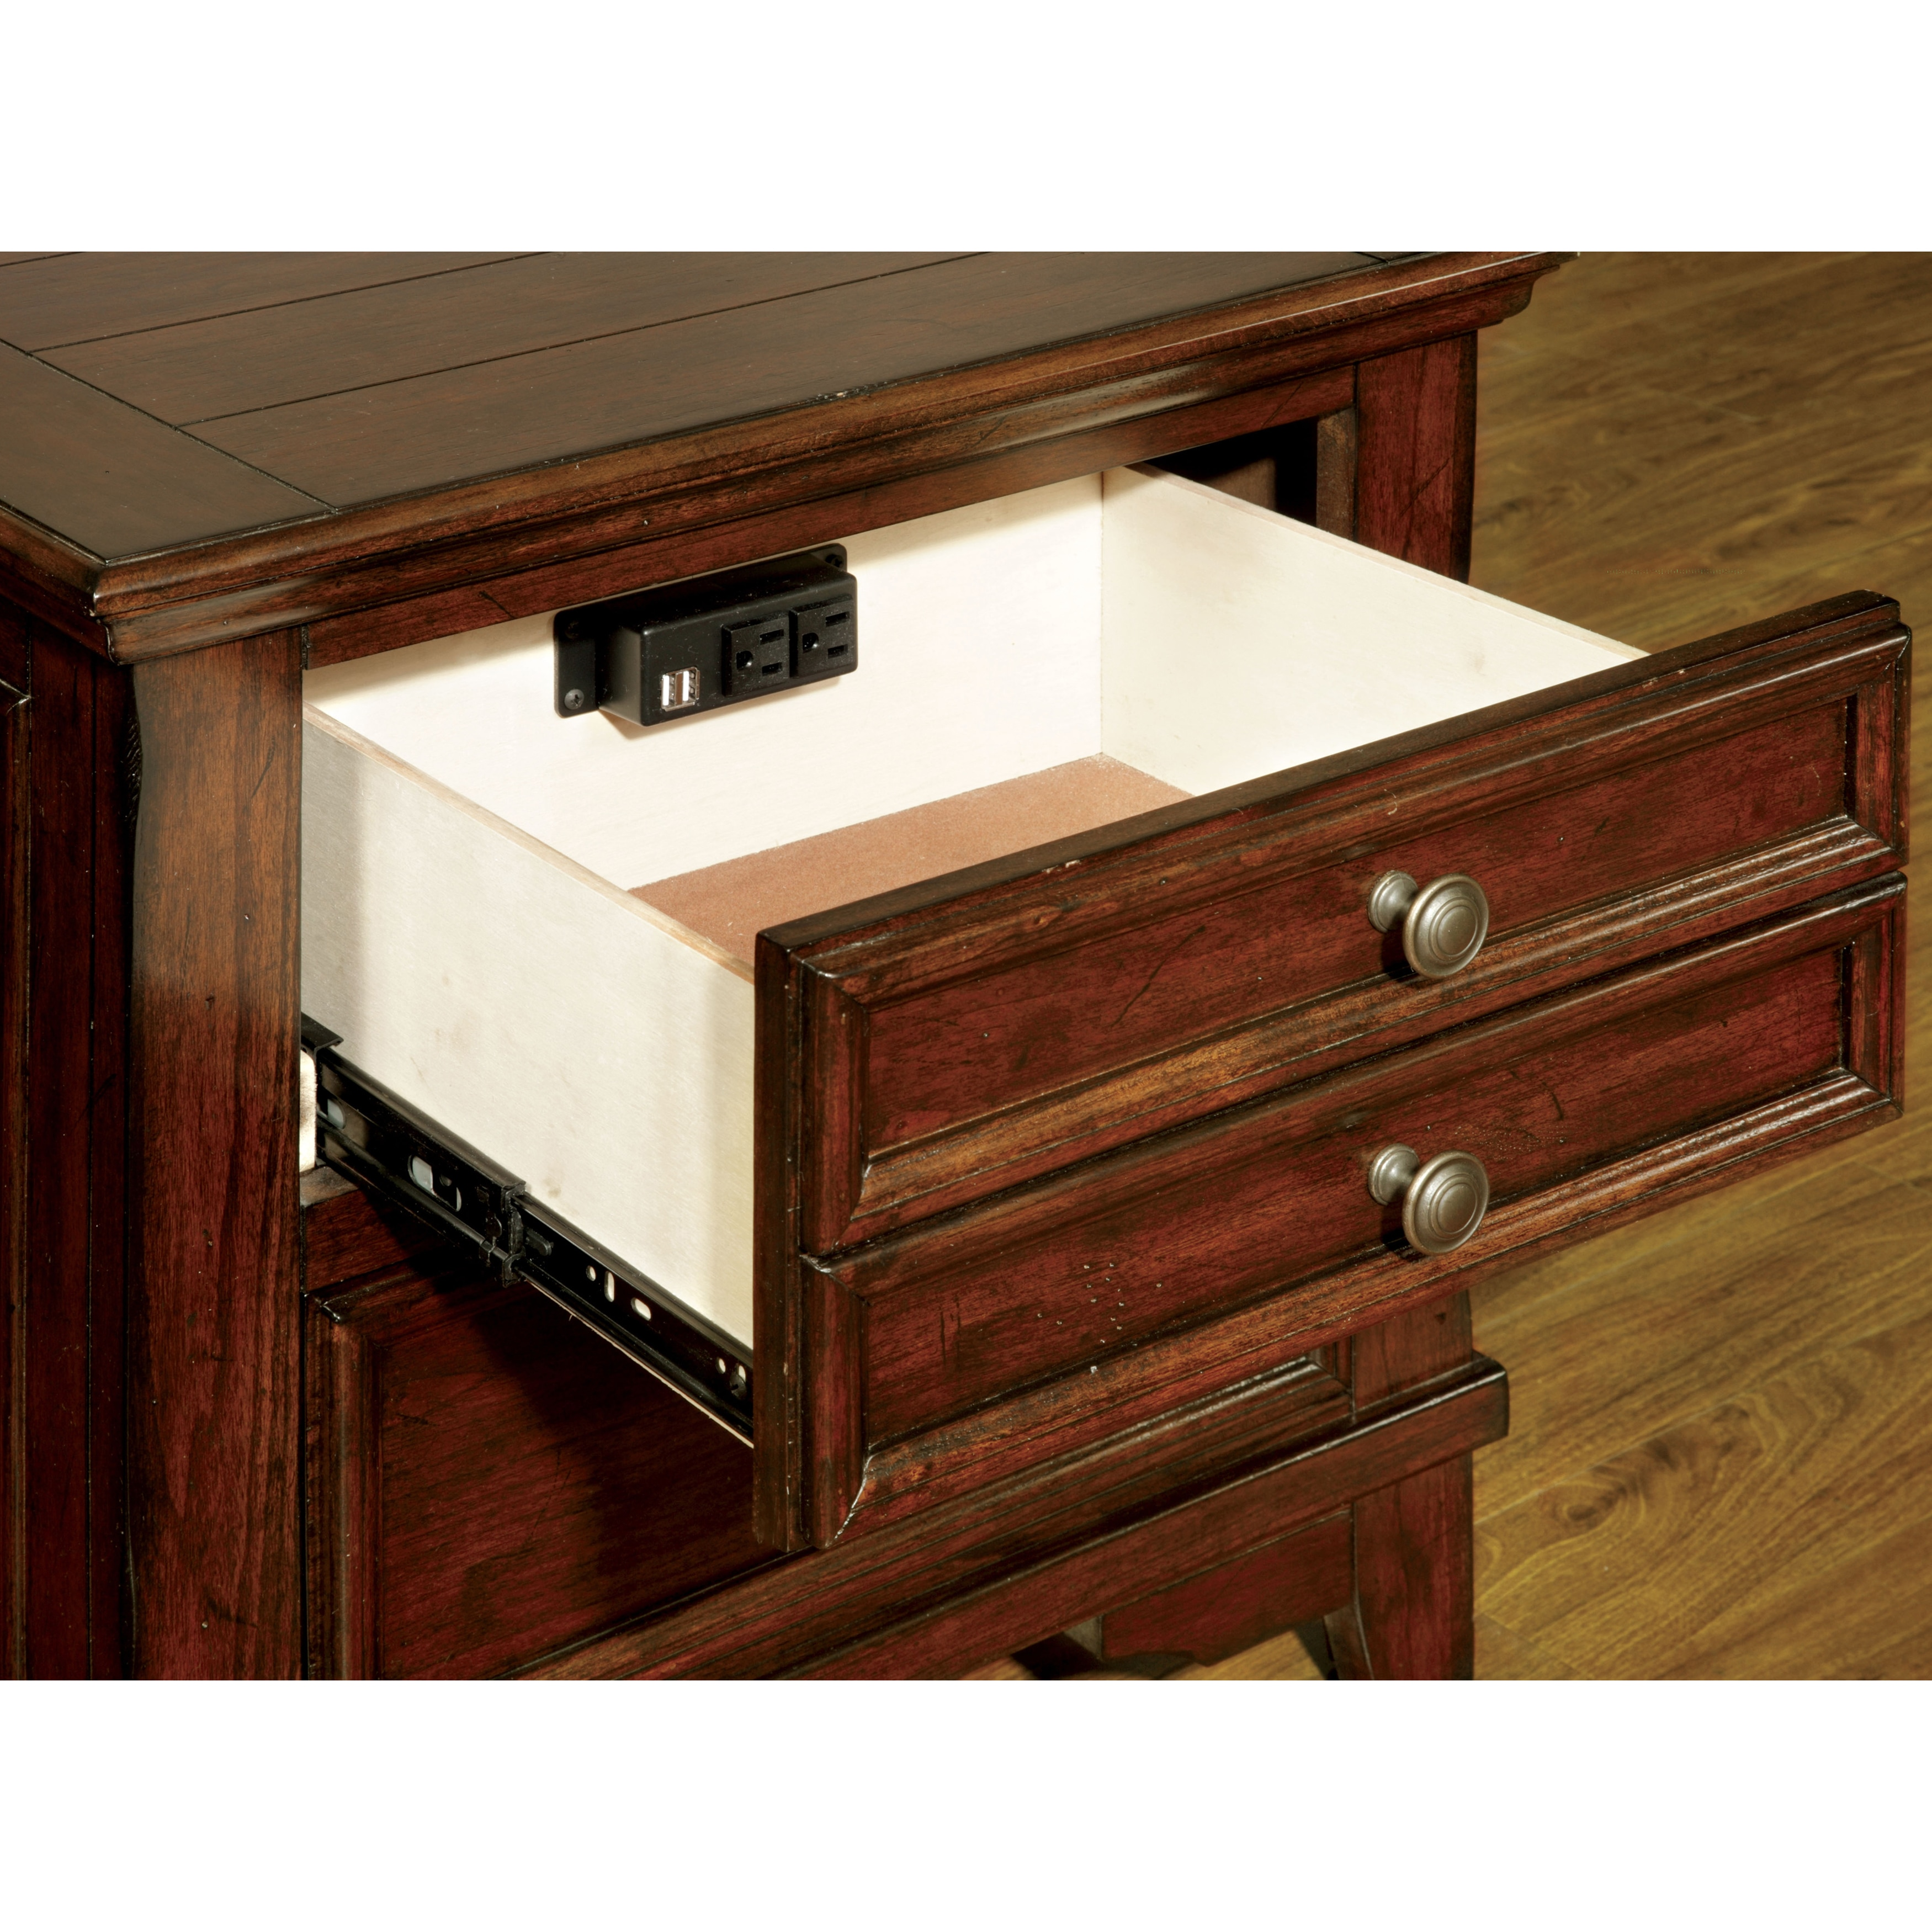 Furniture Of America Trimea Cherry 2 Drawer Nightstand With Built In Usb Outlet On Free Shipping Today 10001073